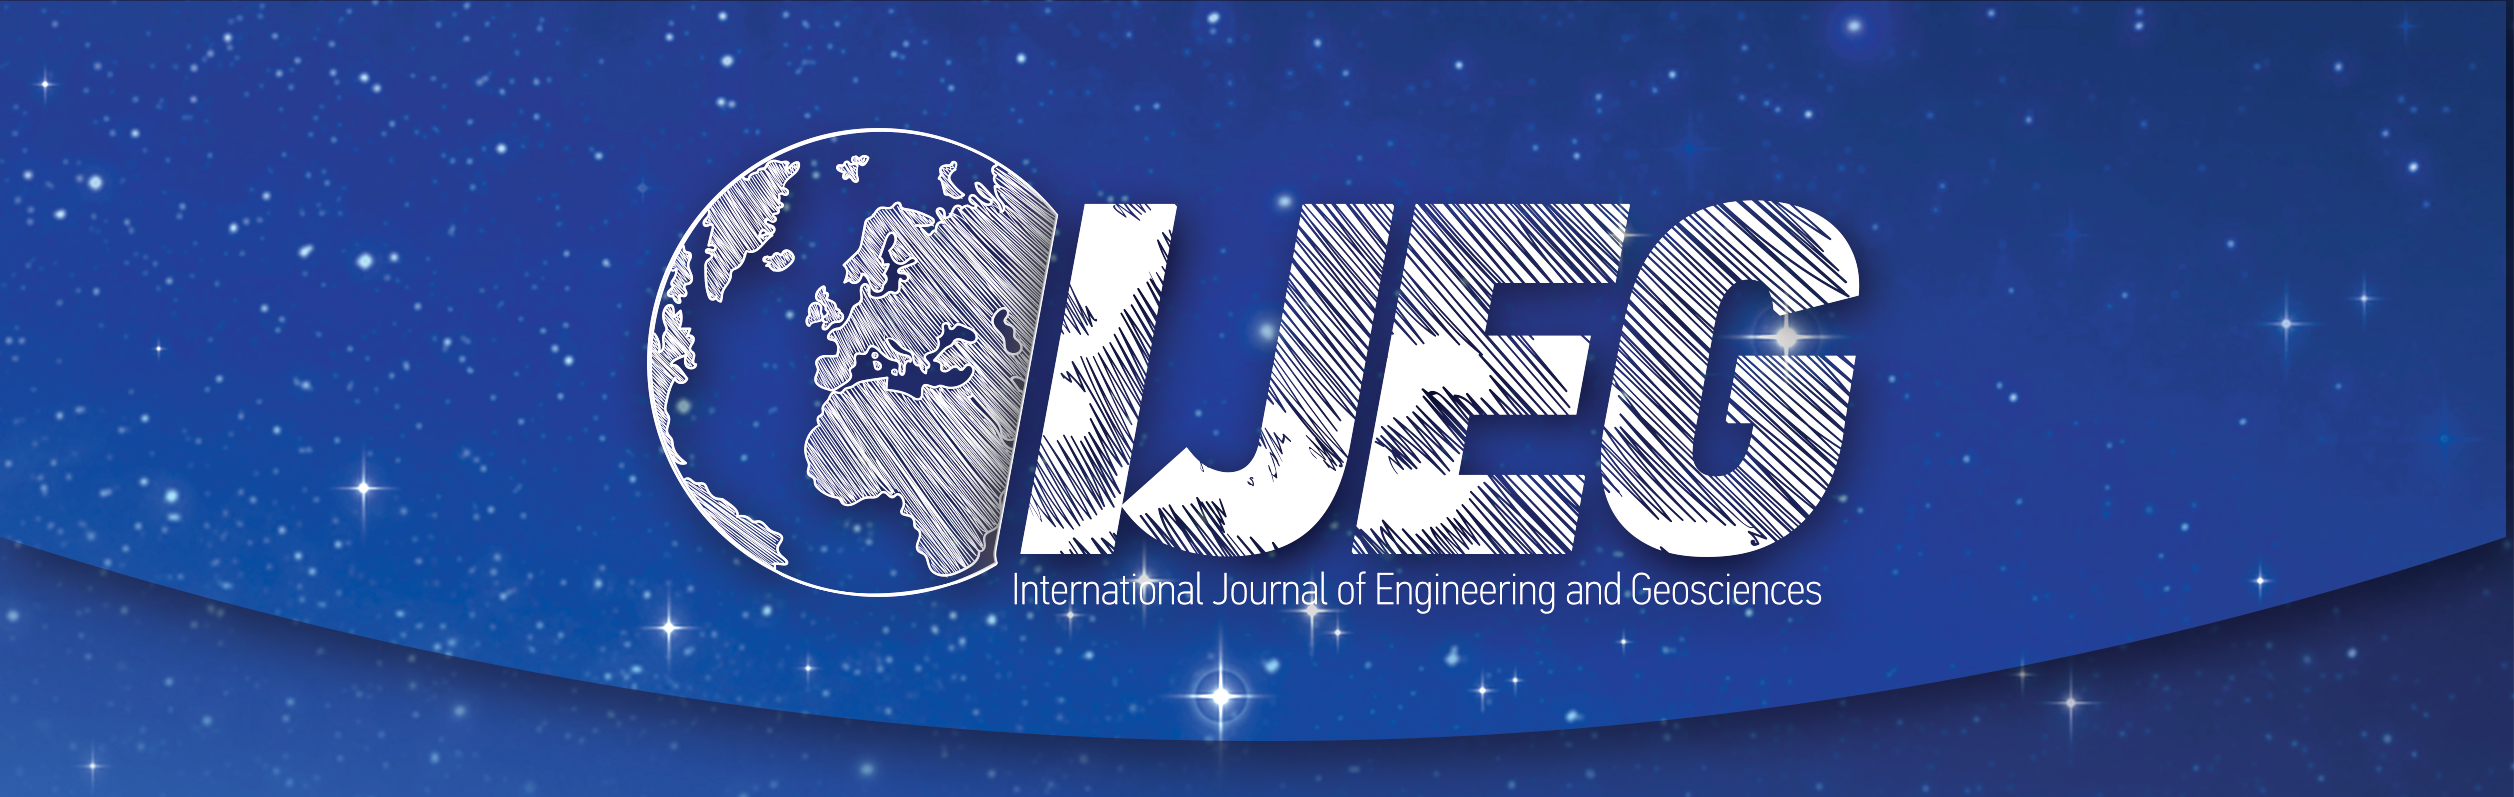 International Journal of Engineering and Geosciences